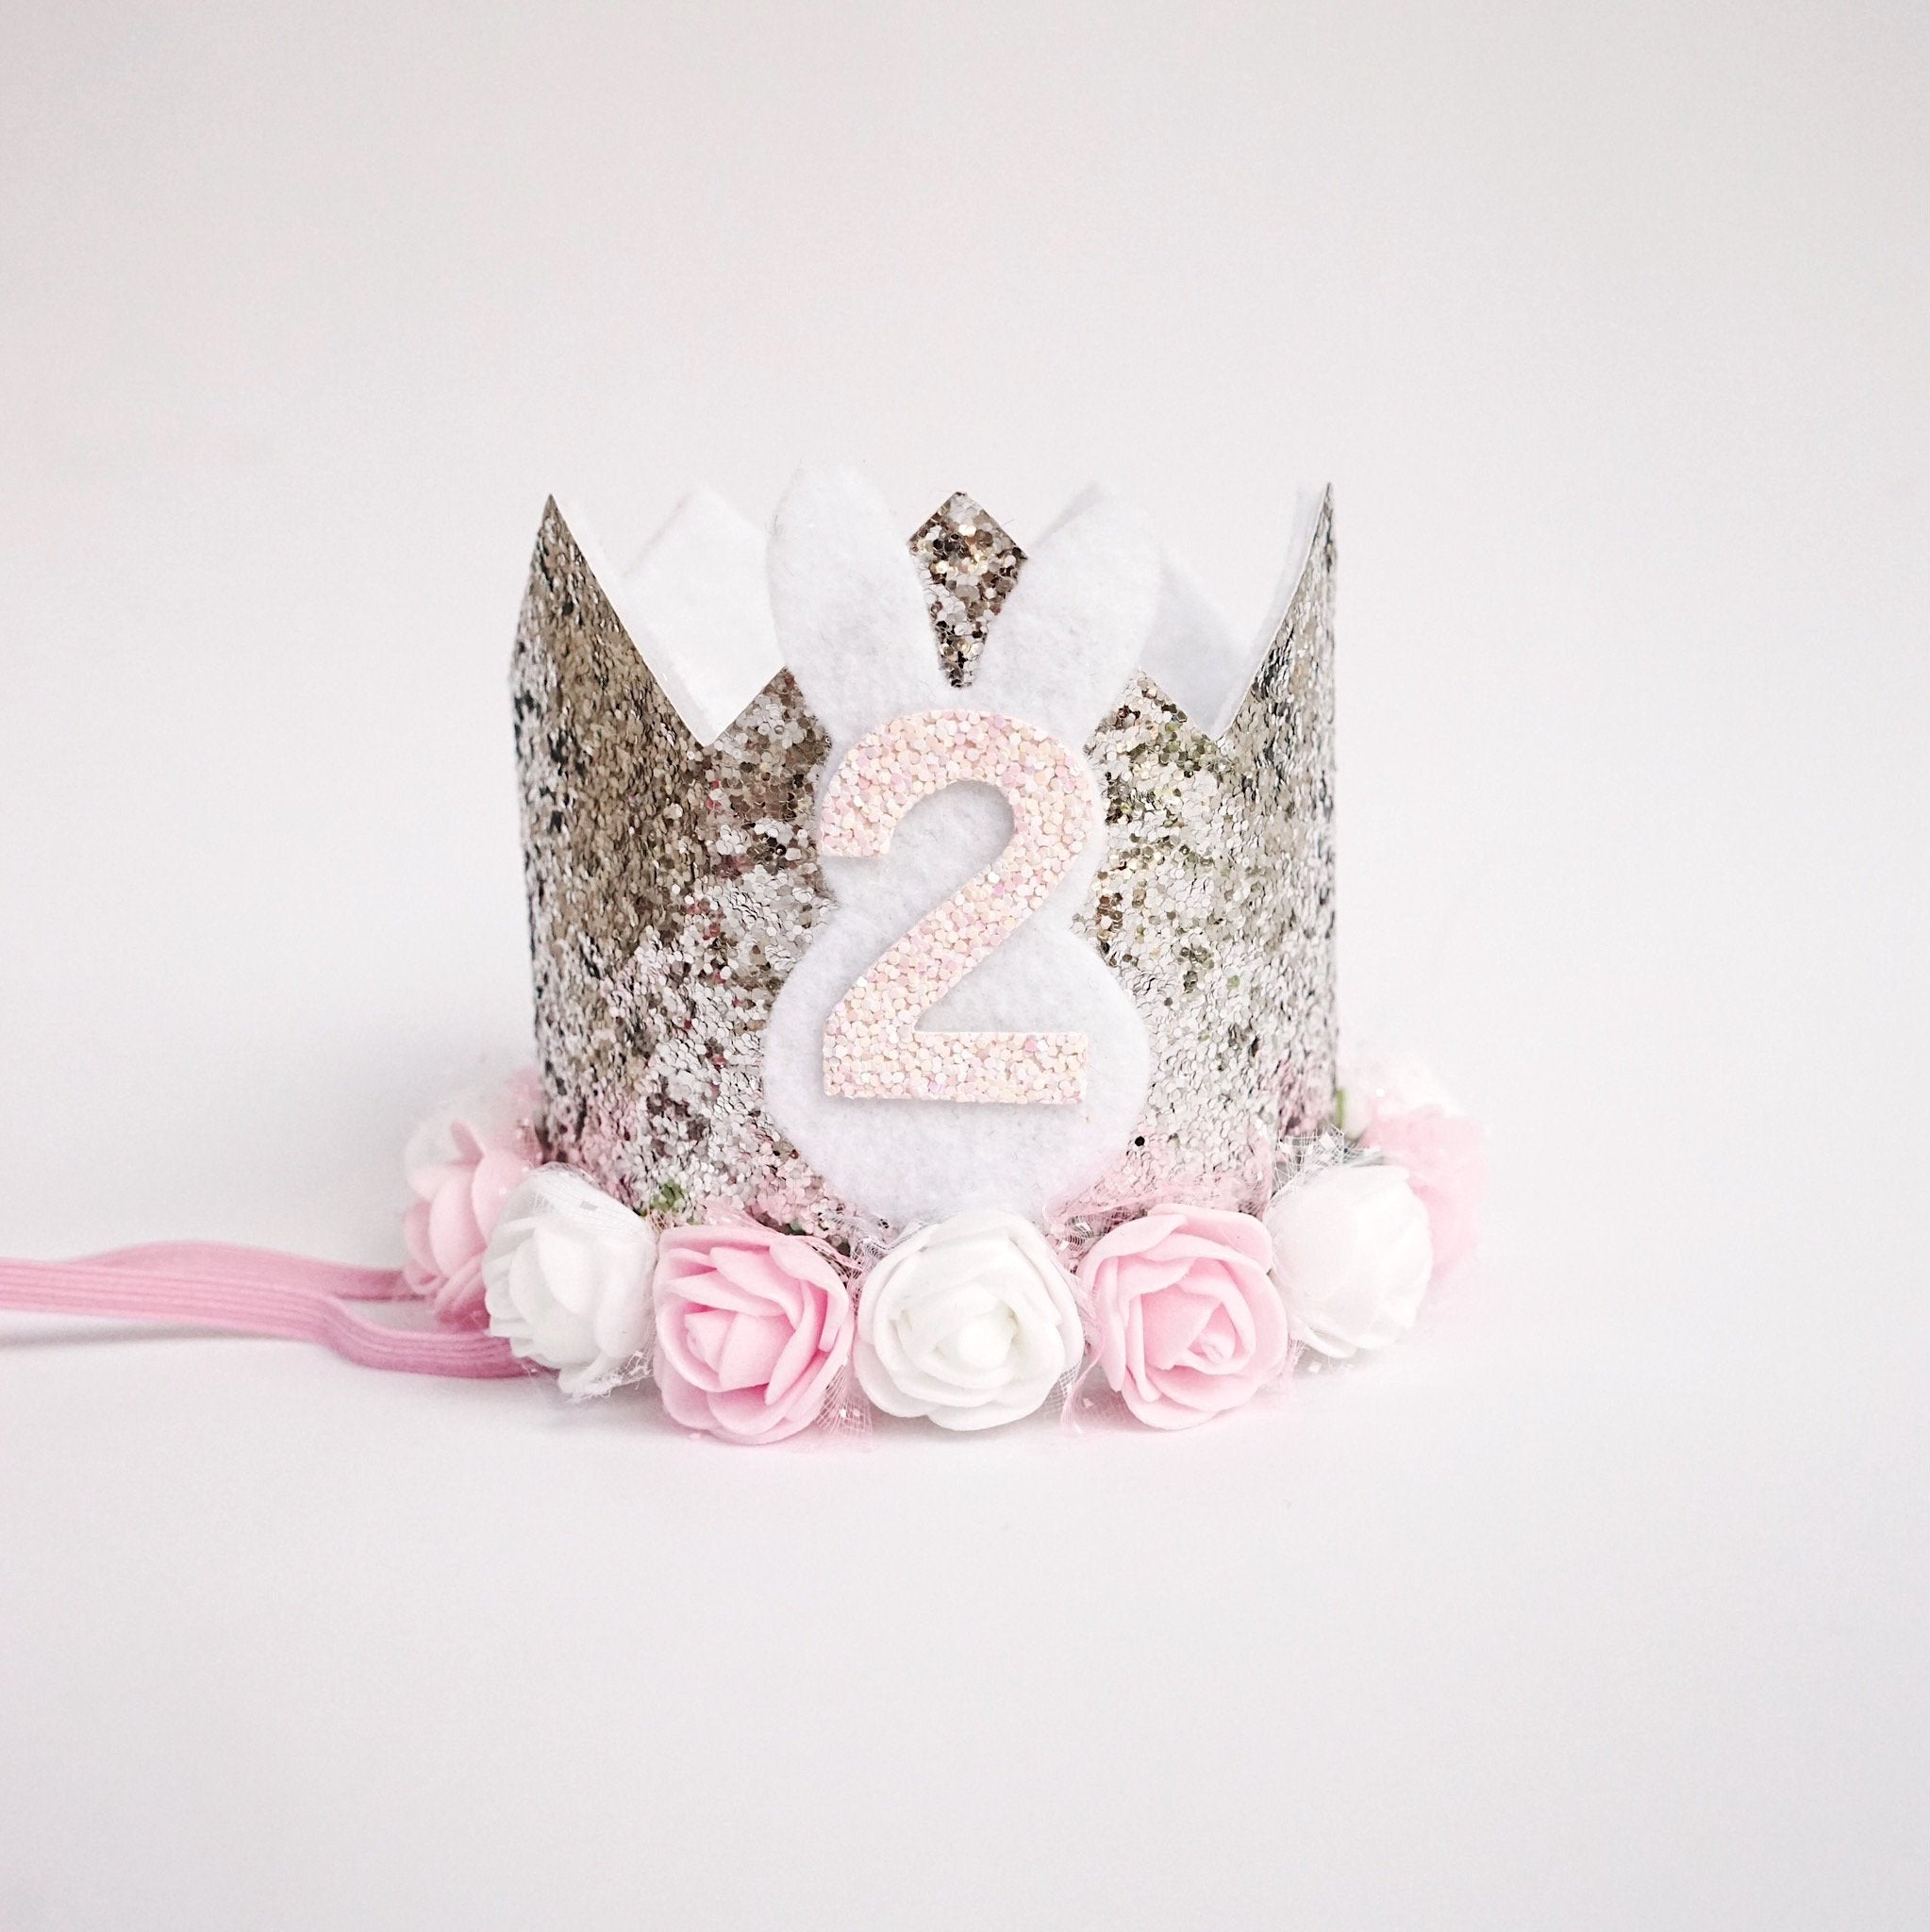 First birthday crown, birthday crown, party hat, 1st birthday girl, party hat, crown accessories, first birthday girl, 1st birthday girl, happy birthday, girl birthday decorations, girl birthday ideas, girl birthday accessories, cake smash photos, cake smash decor, cake smash girl, cake smash outfit, party styling, party decor, flowery birthday decor, flower birthday, floral birthday, spring birthday, summer birthday, boho birthday, boho decor, garden birthday,